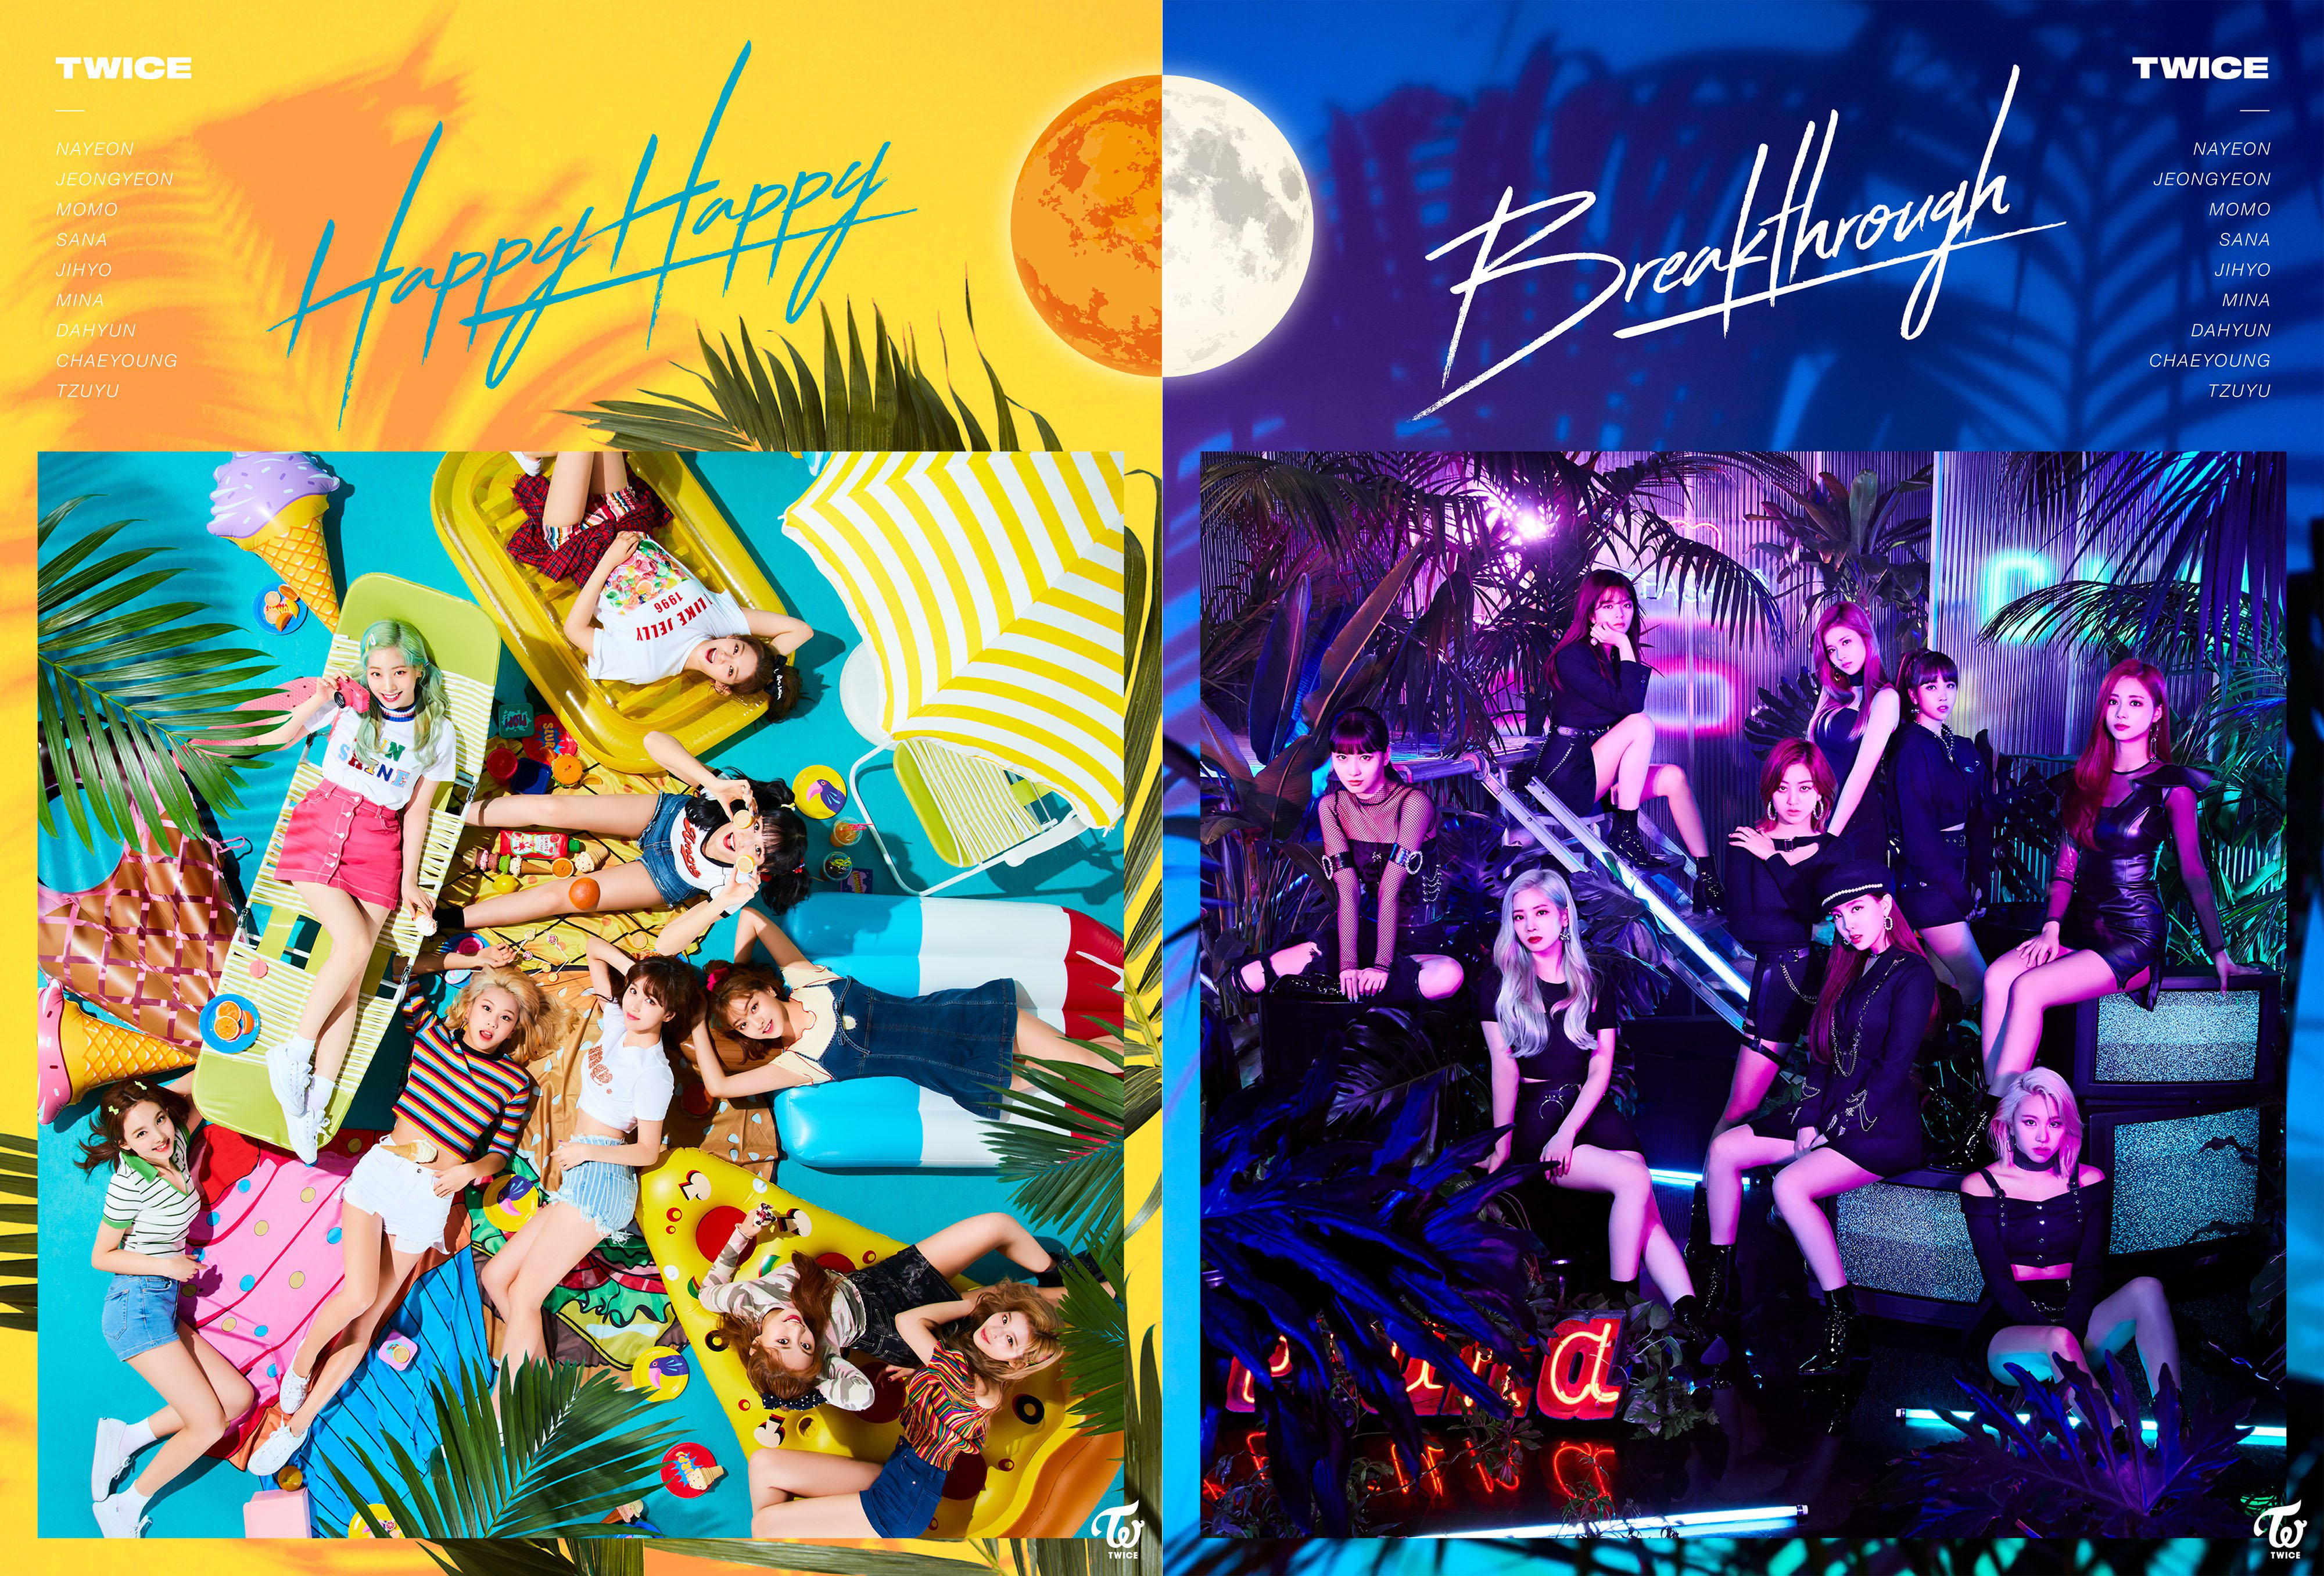 Twice Happy Happy and Breakthrough Covers